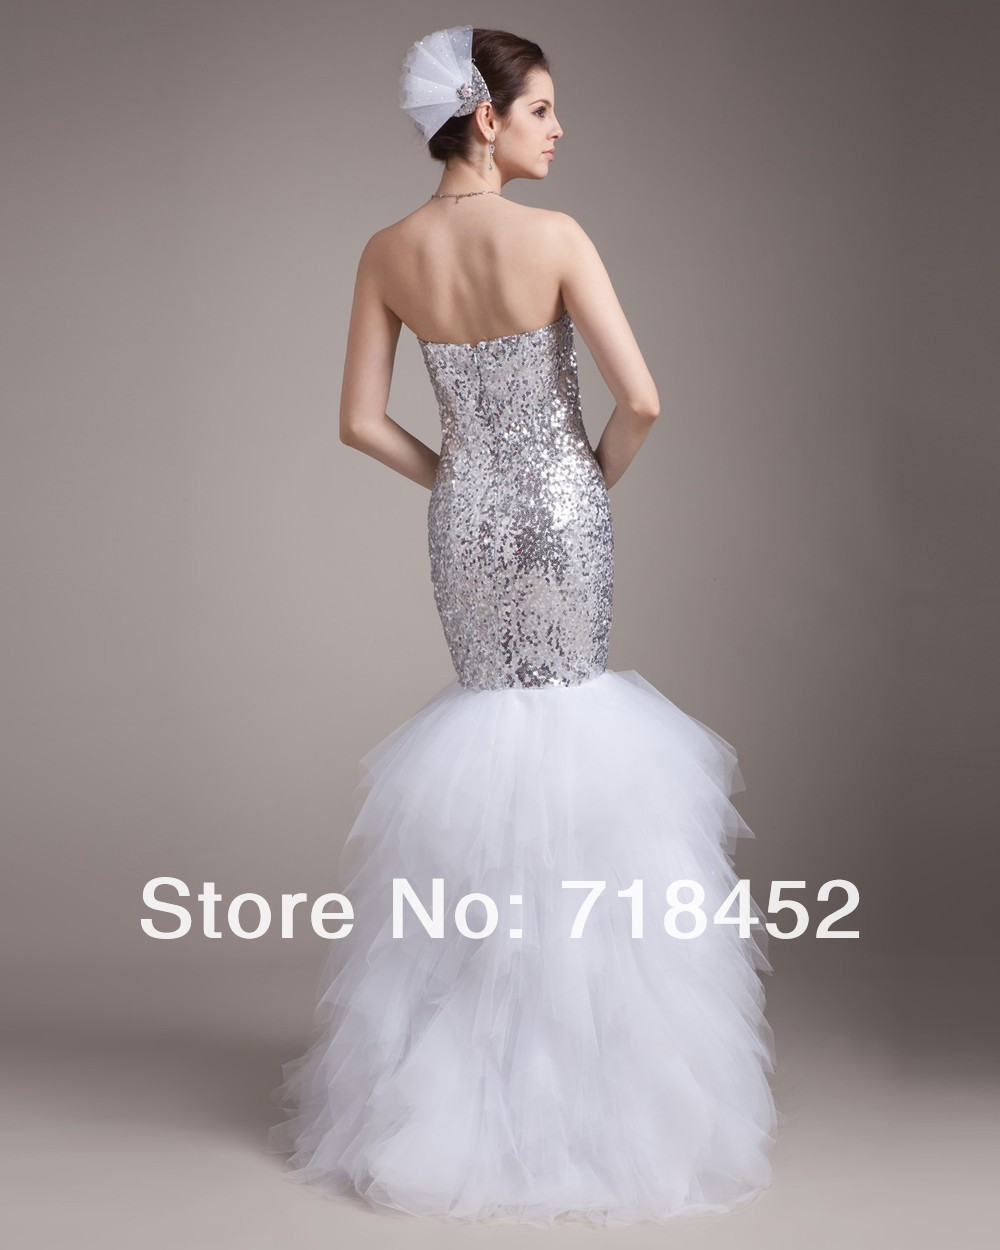 Sexy Bling Bling 2013 Mermaid Wedding Dress Sweetheart Sequins White  Organza MR013 56a385228b89